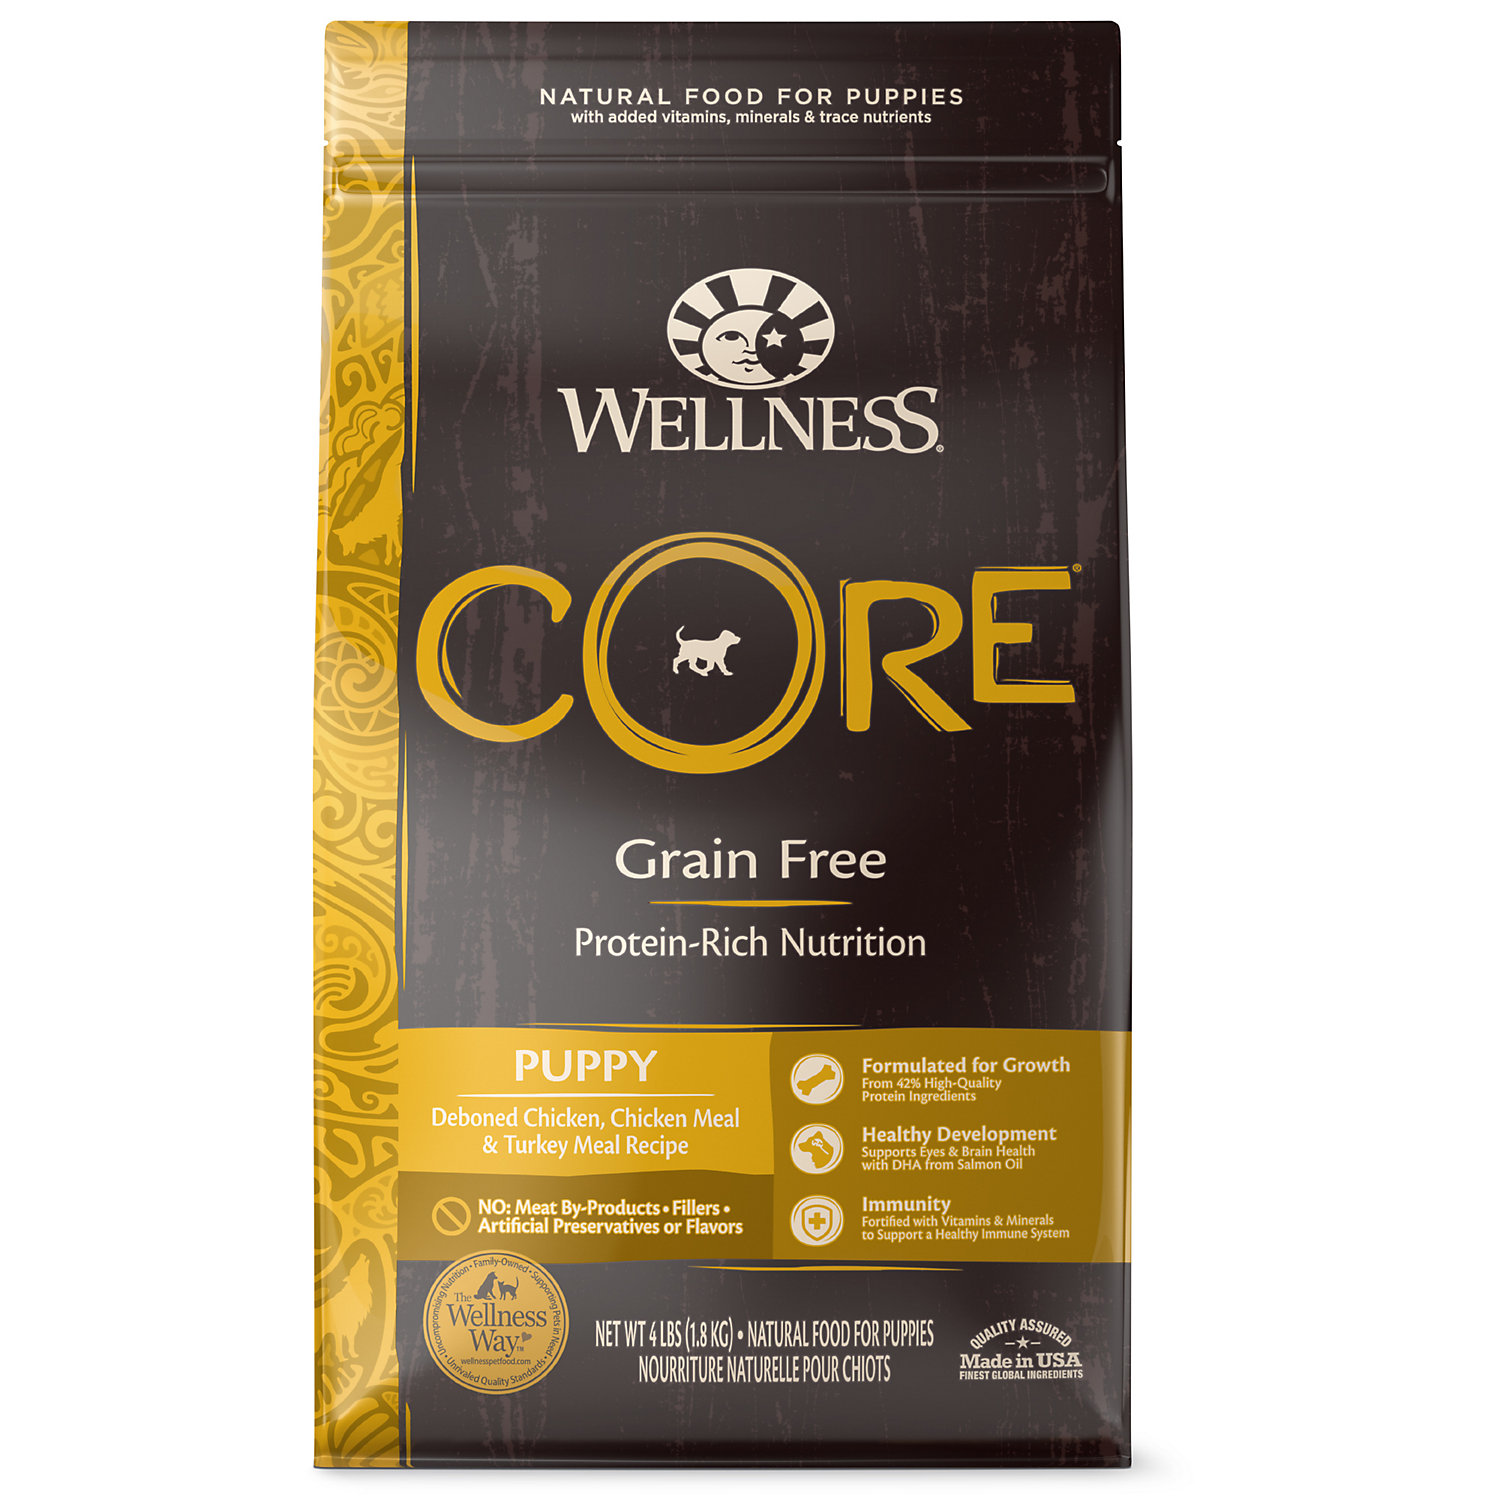 076344884194 Upc Wellness Core Puppy Formula Dog Food 4